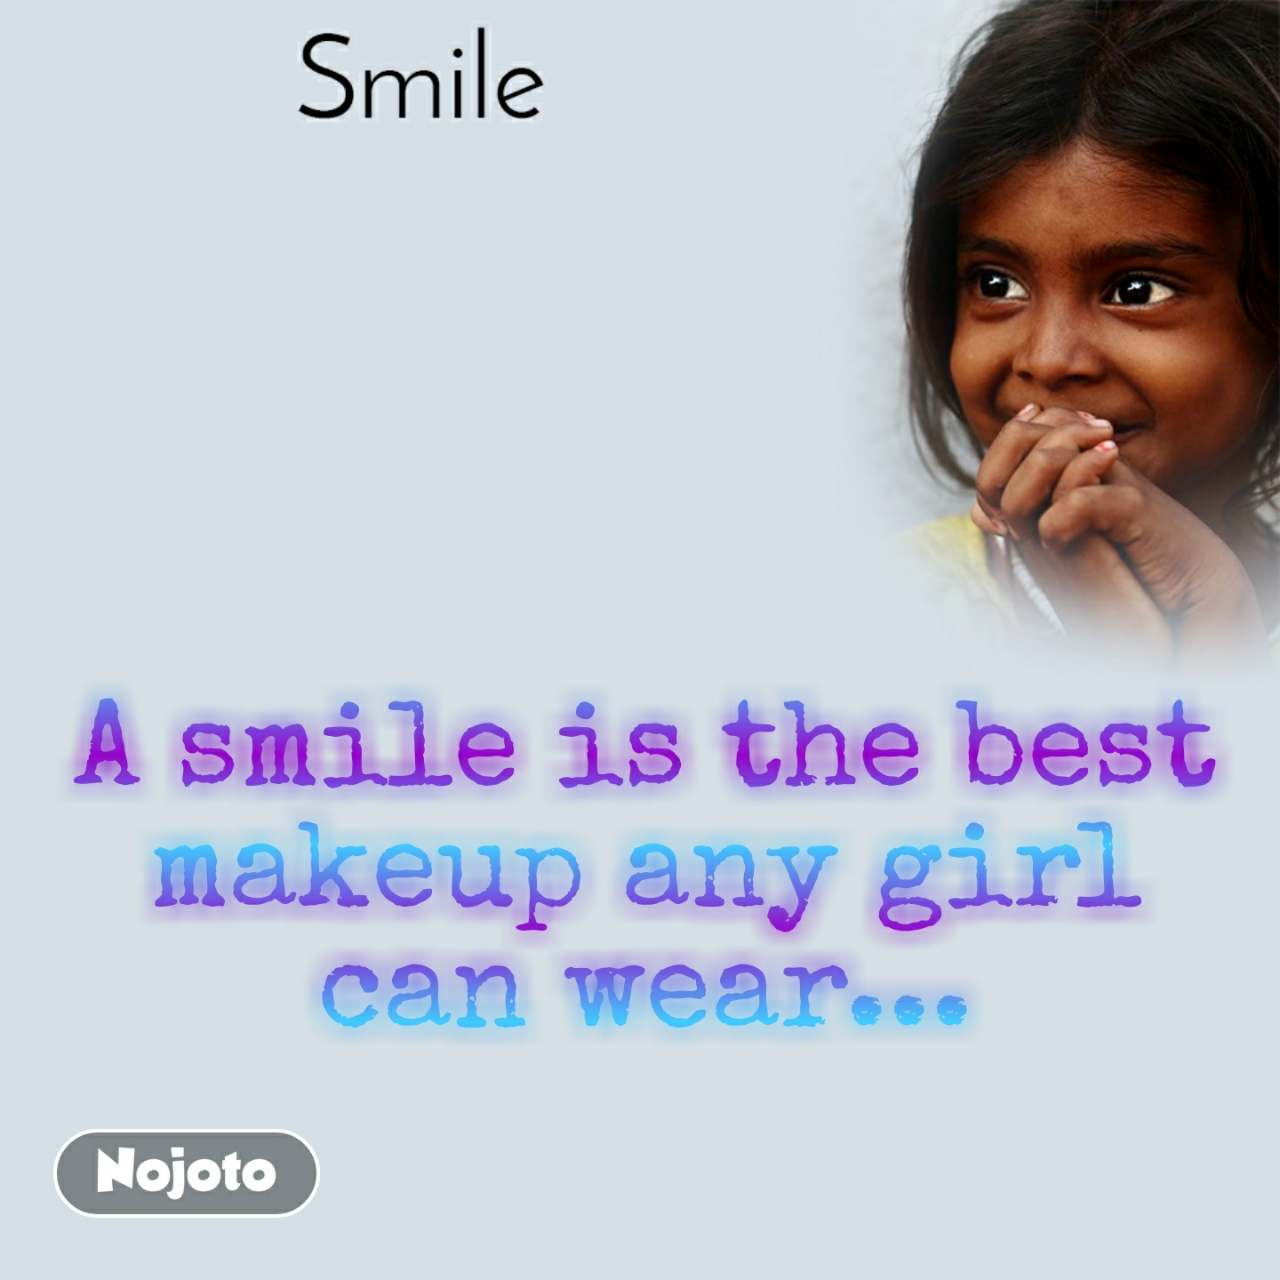 Smile A smile is the best makeup any girl can wear...